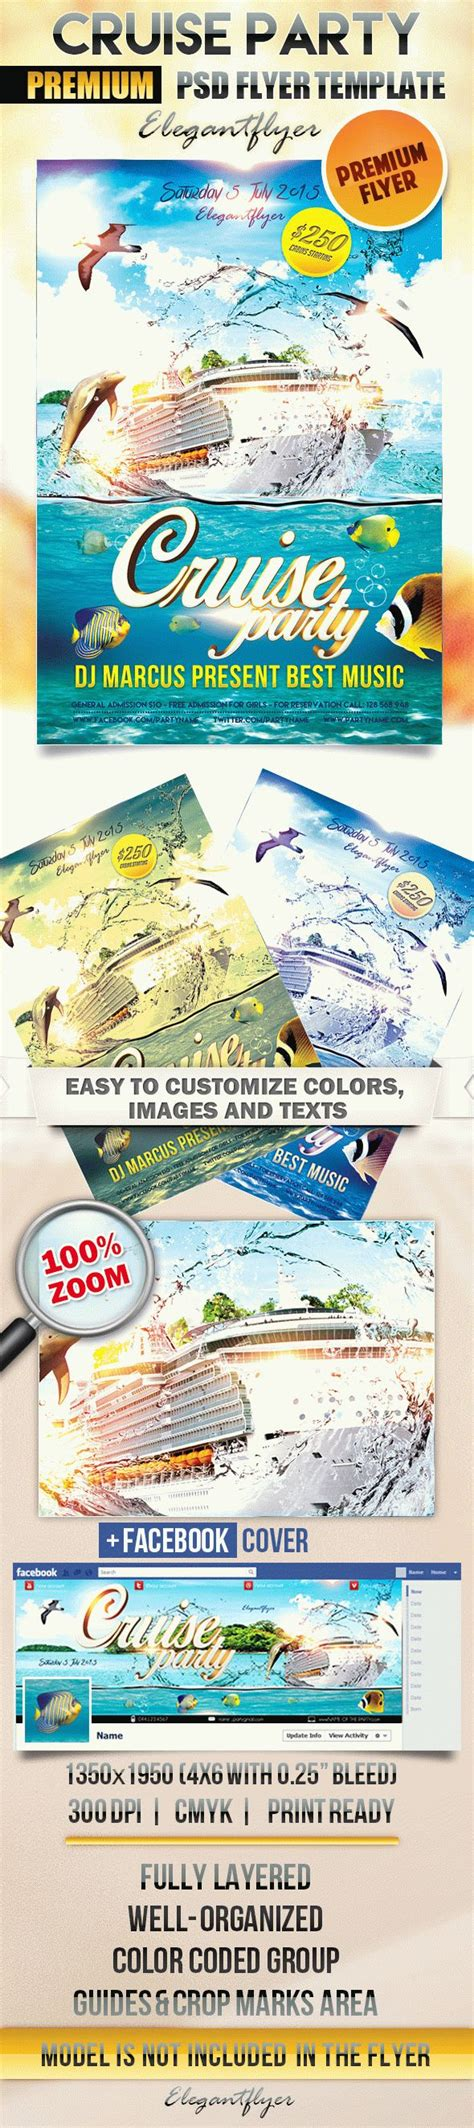 Flyer For Cruise Theme Party By Elegantflyer Free Boat Flyer Template